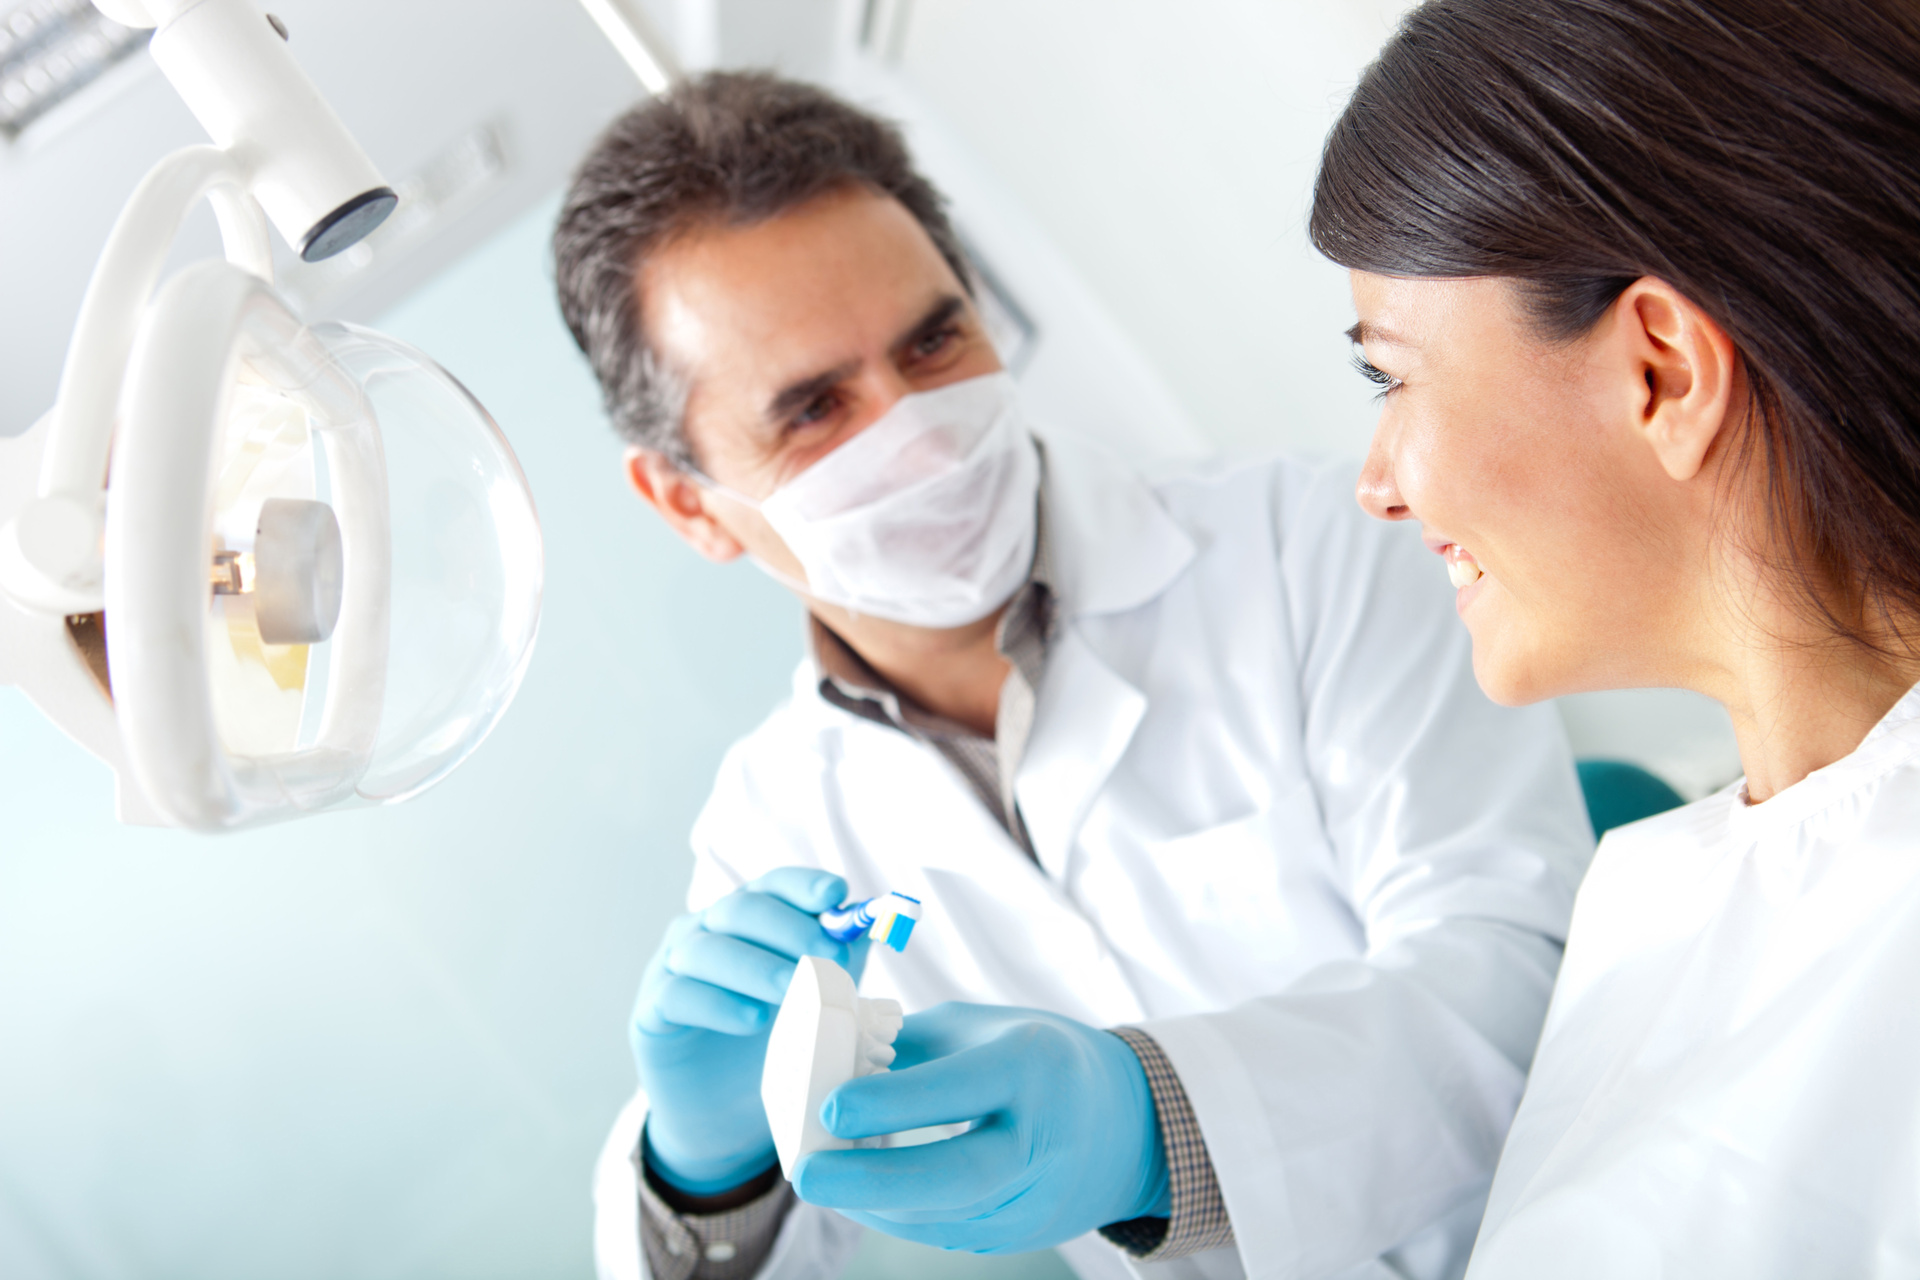 image for dental health tips for adults